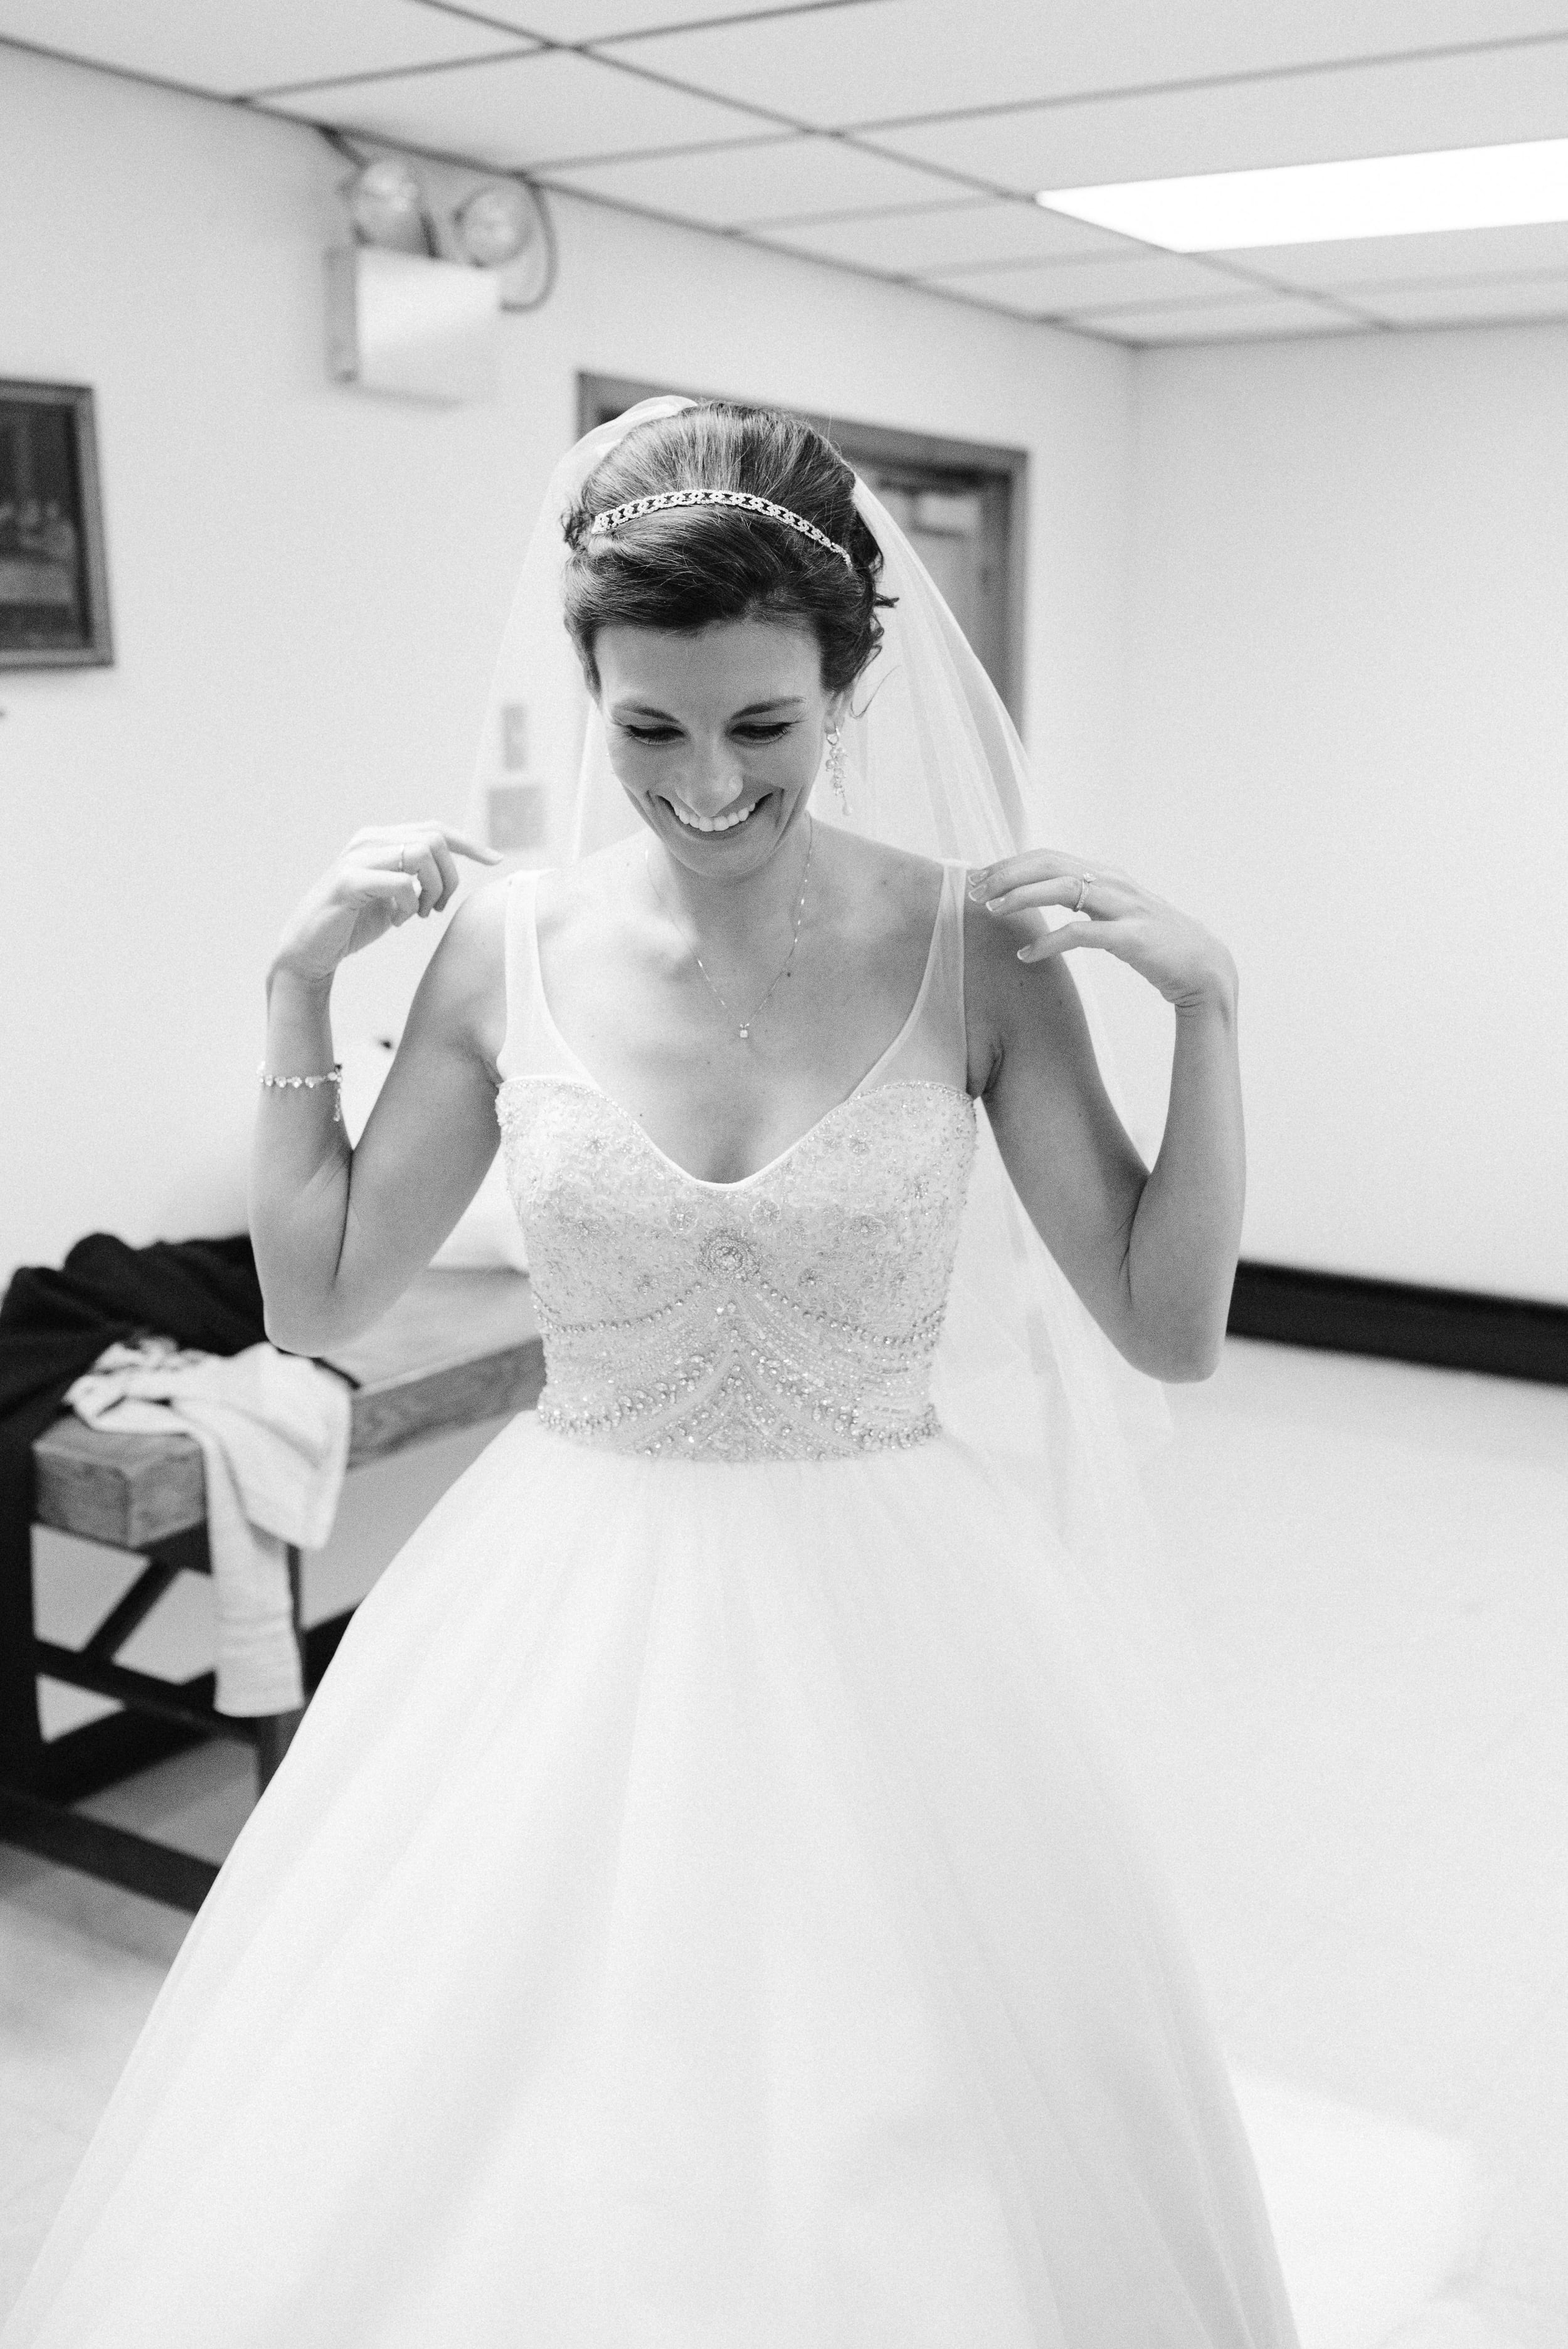 Bride getting ready M.Fisher.jpg